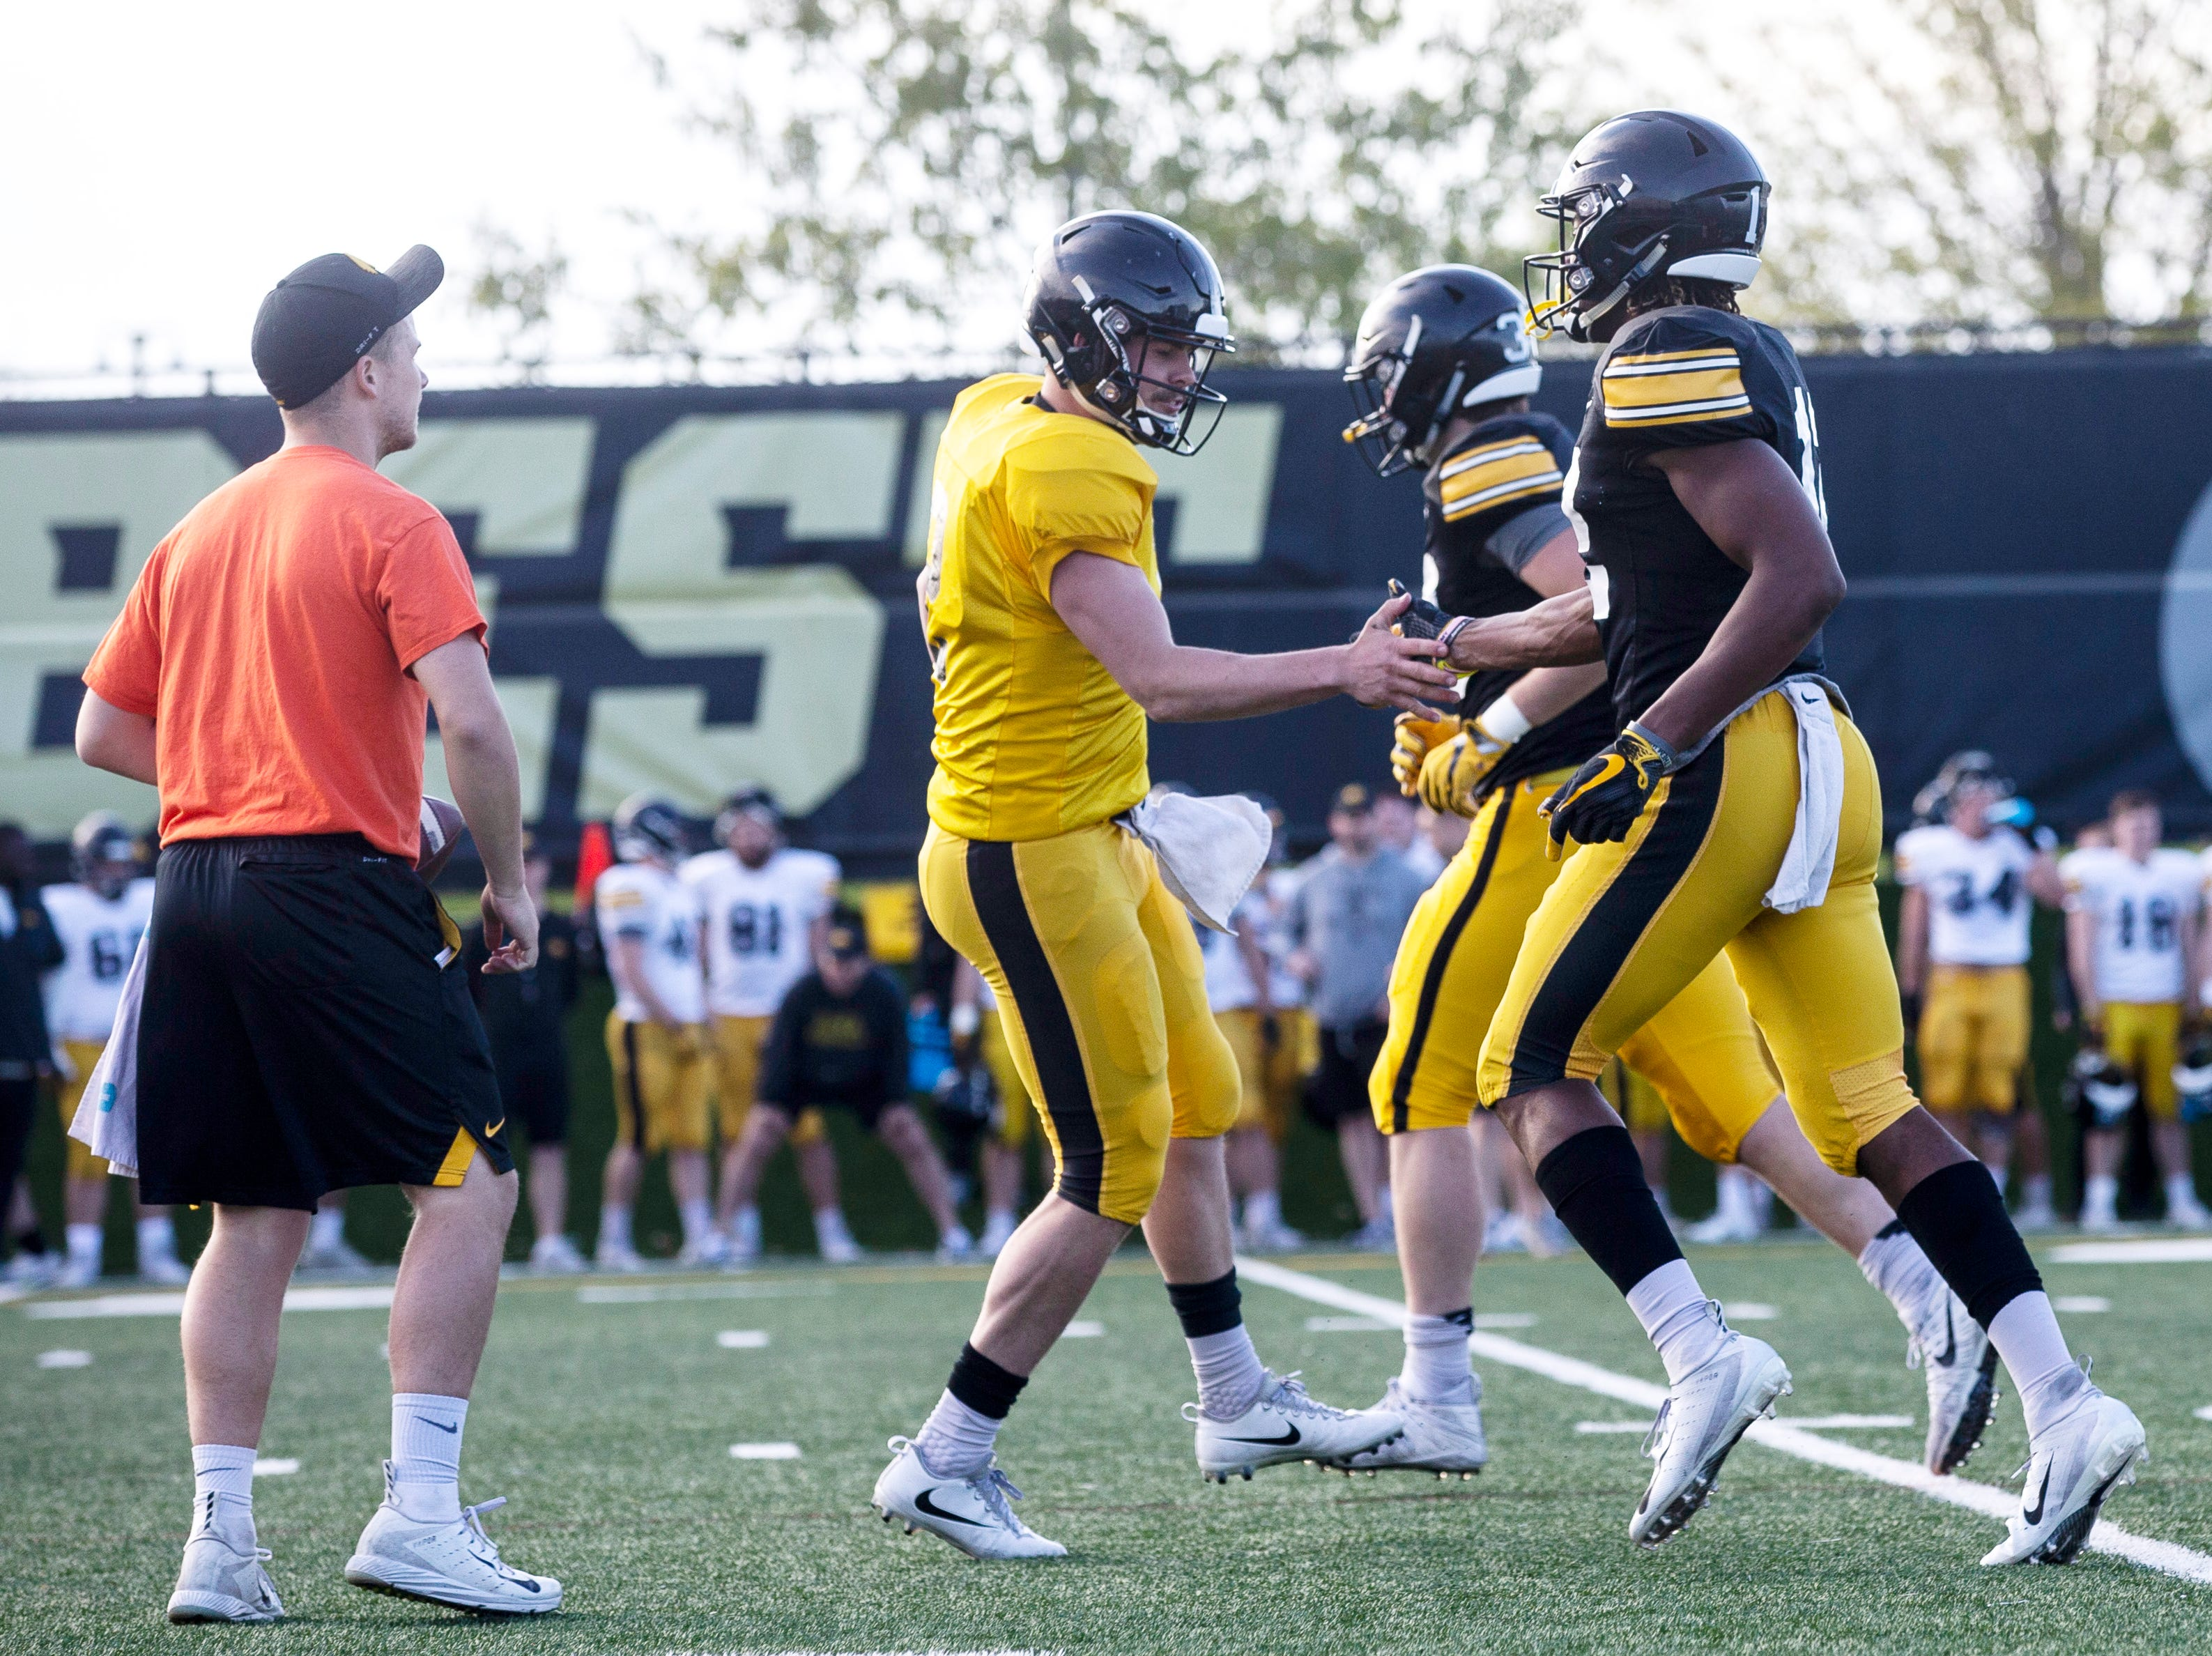 Iowa quarterback Peyton Mansell, second from left, high-fives teammate Brandon Smith (12) after he caught a touchdown pass during the final spring football practice, Friday, April 26, 2019, at the University of Iowa outdoor practice facility in Iowa City, Iowa.